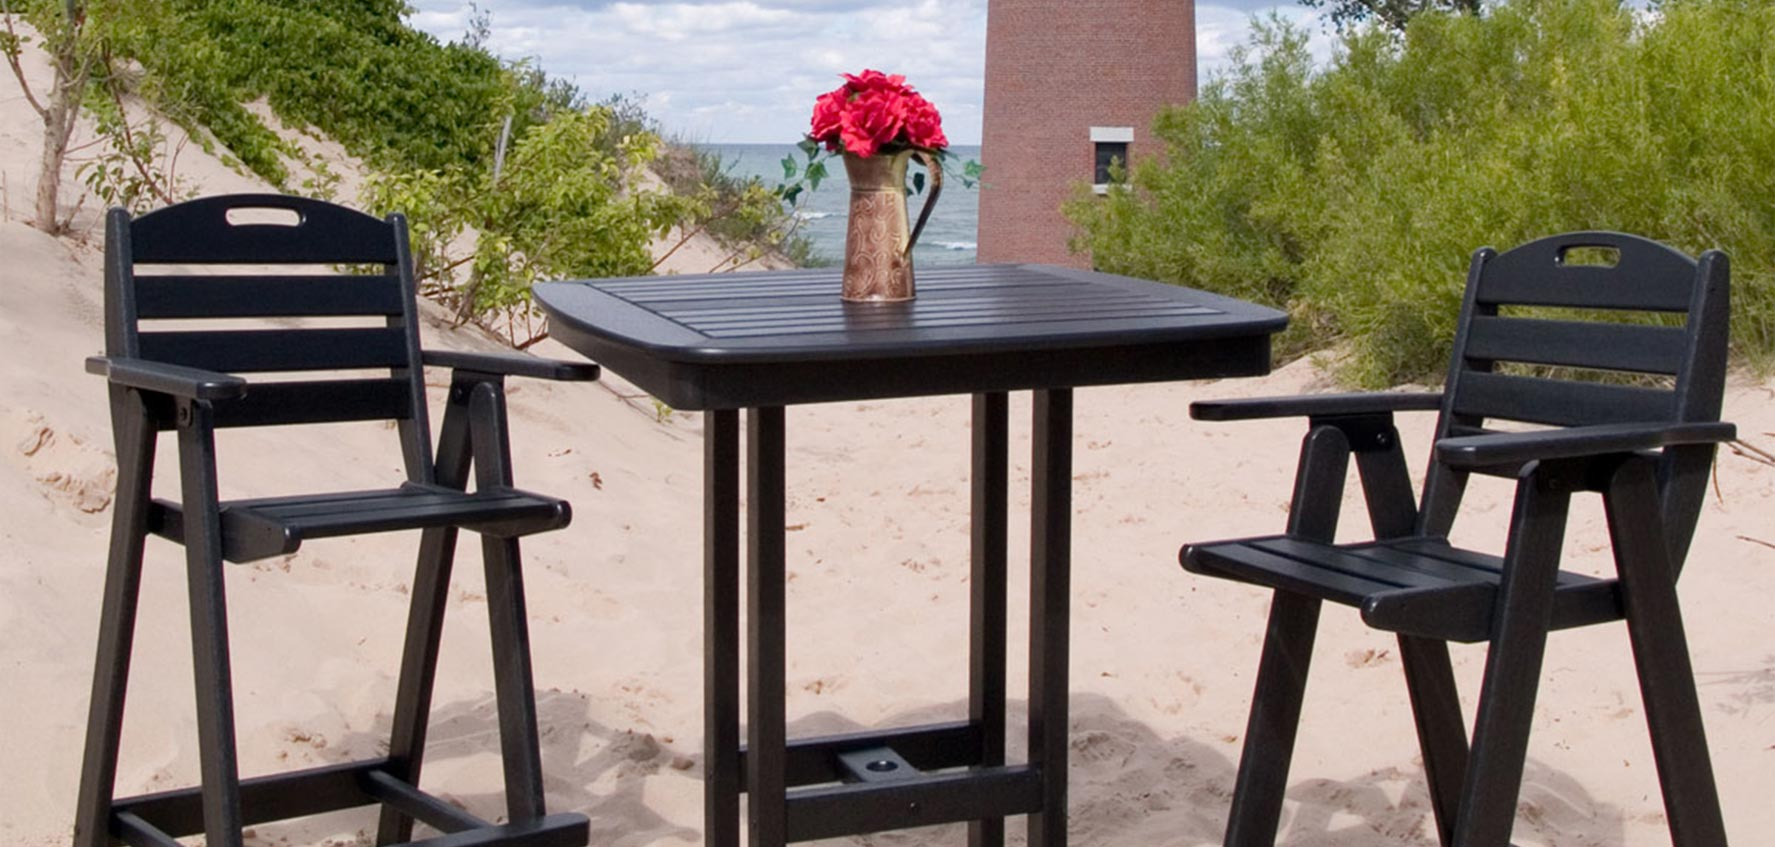 Nautical Outdoor Furniture By Polywood Vermont Woods Studios